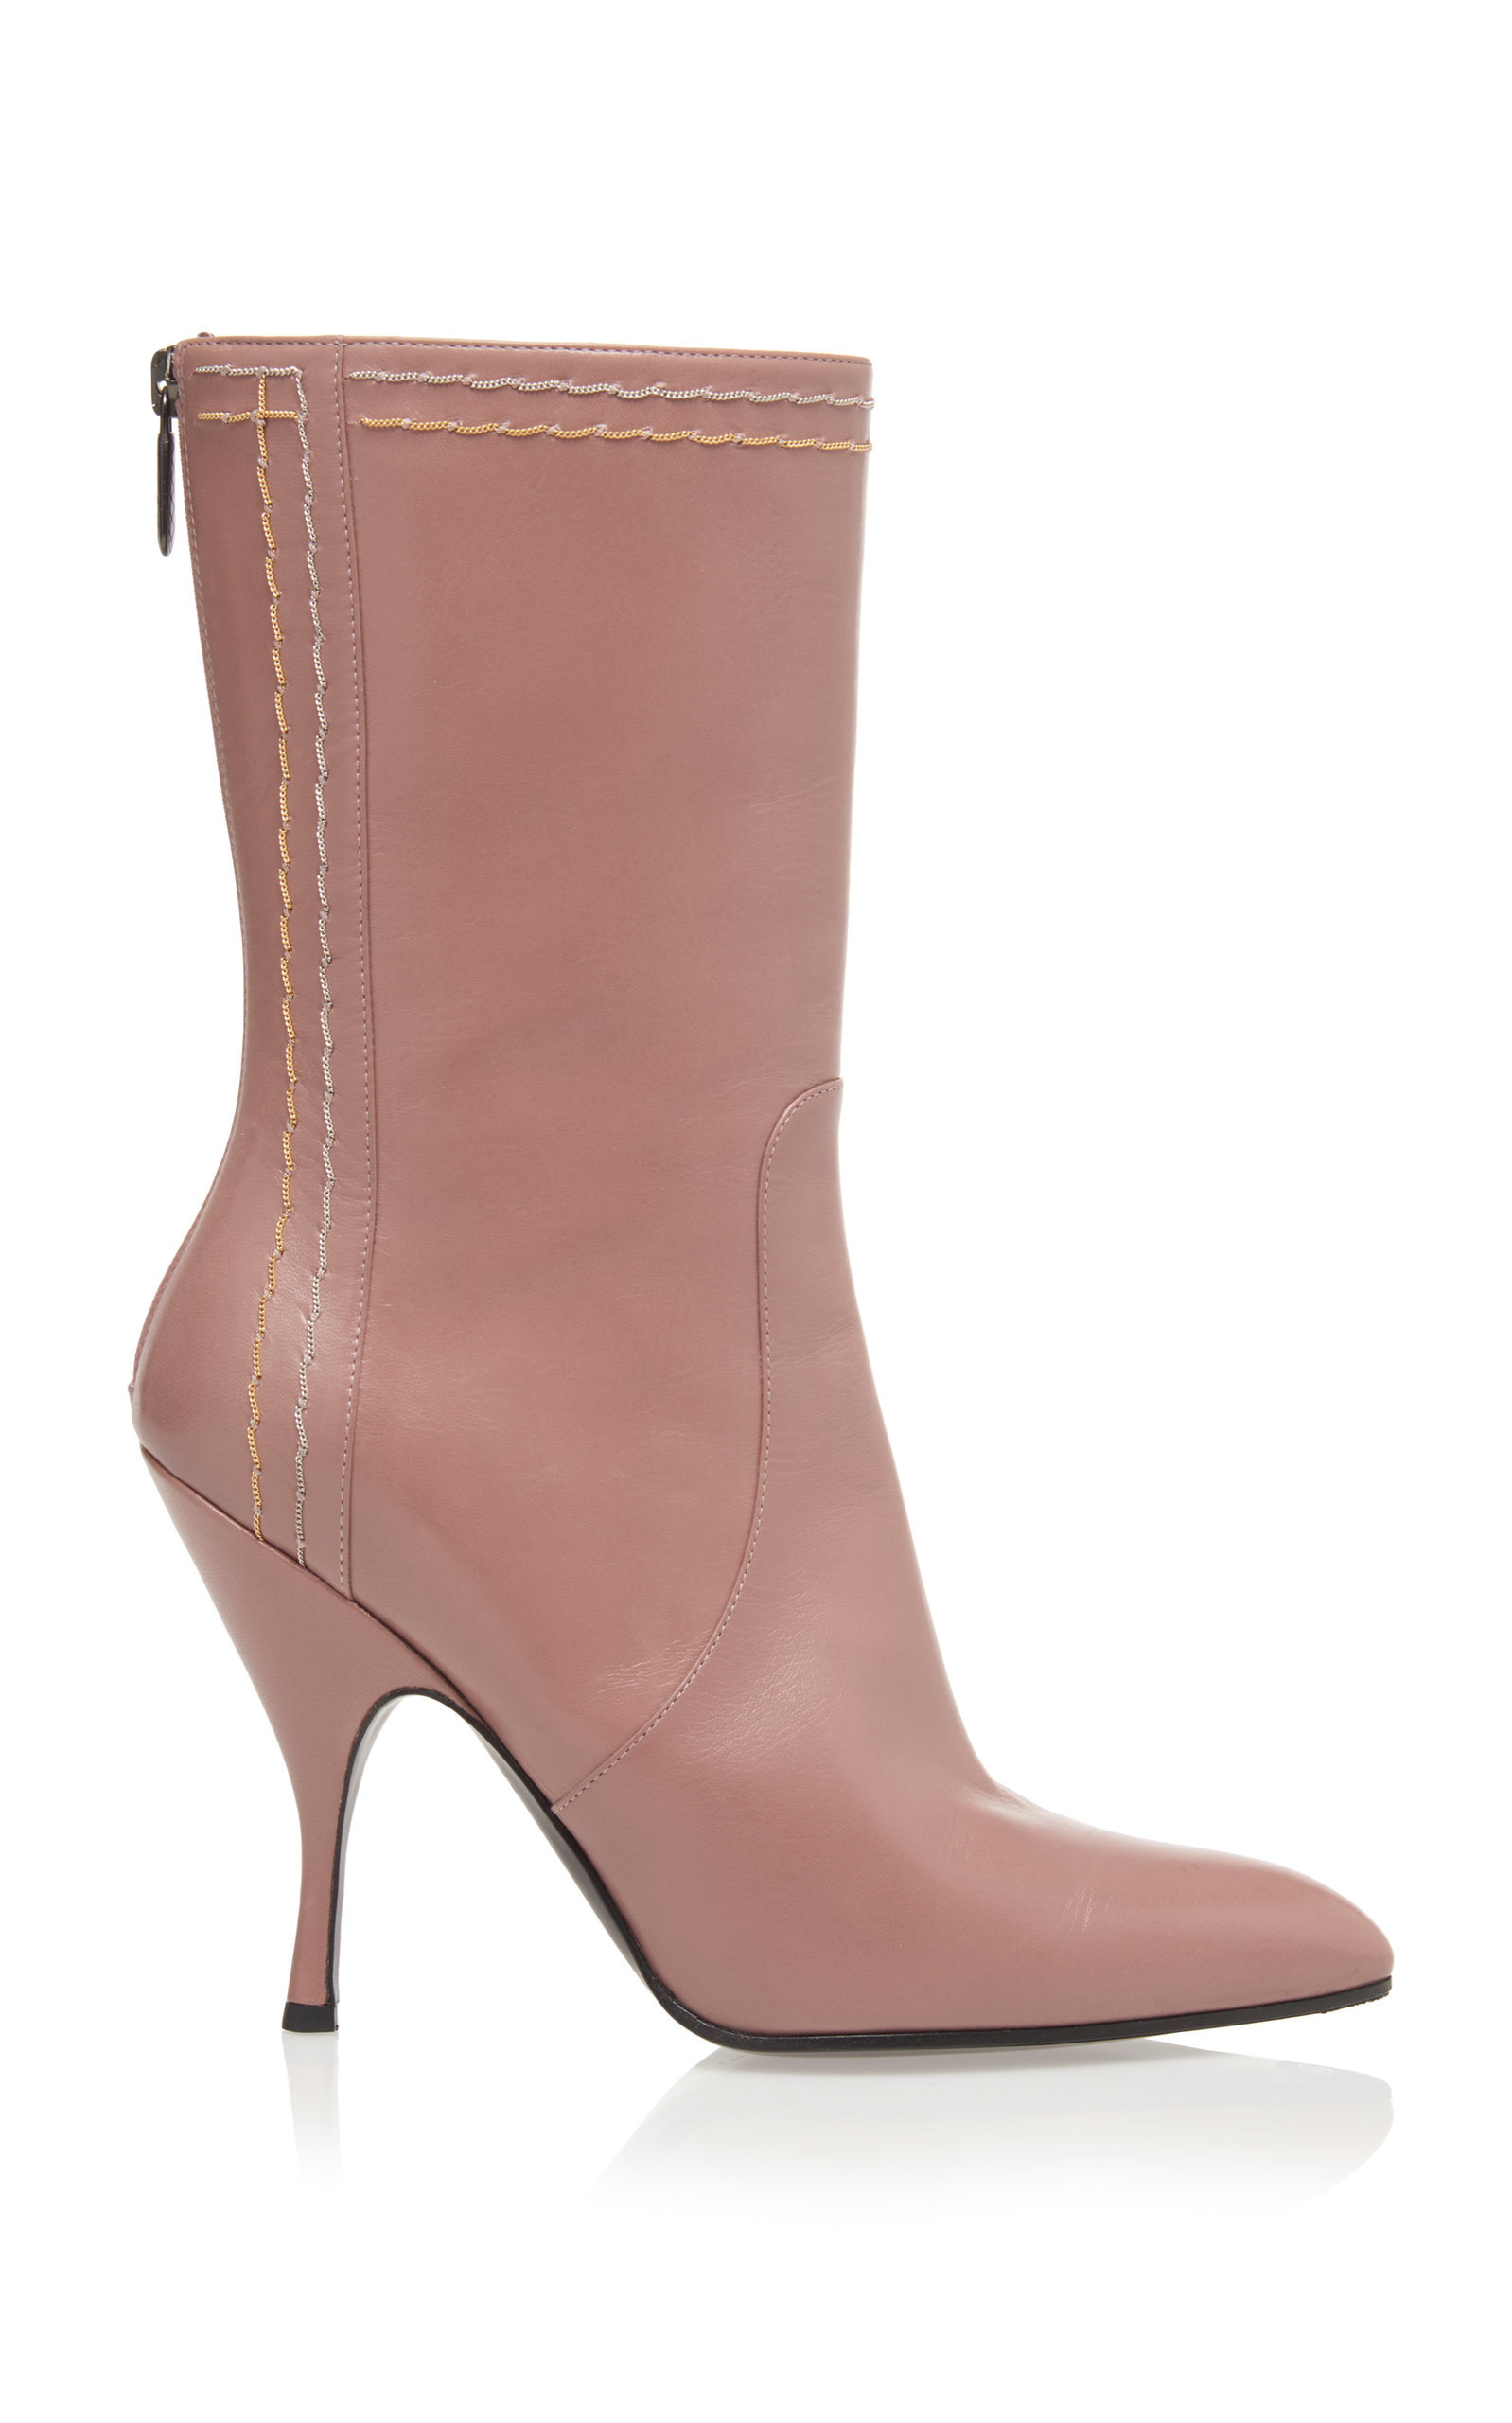 Chain-Embellished Leather Boots in Light Pink